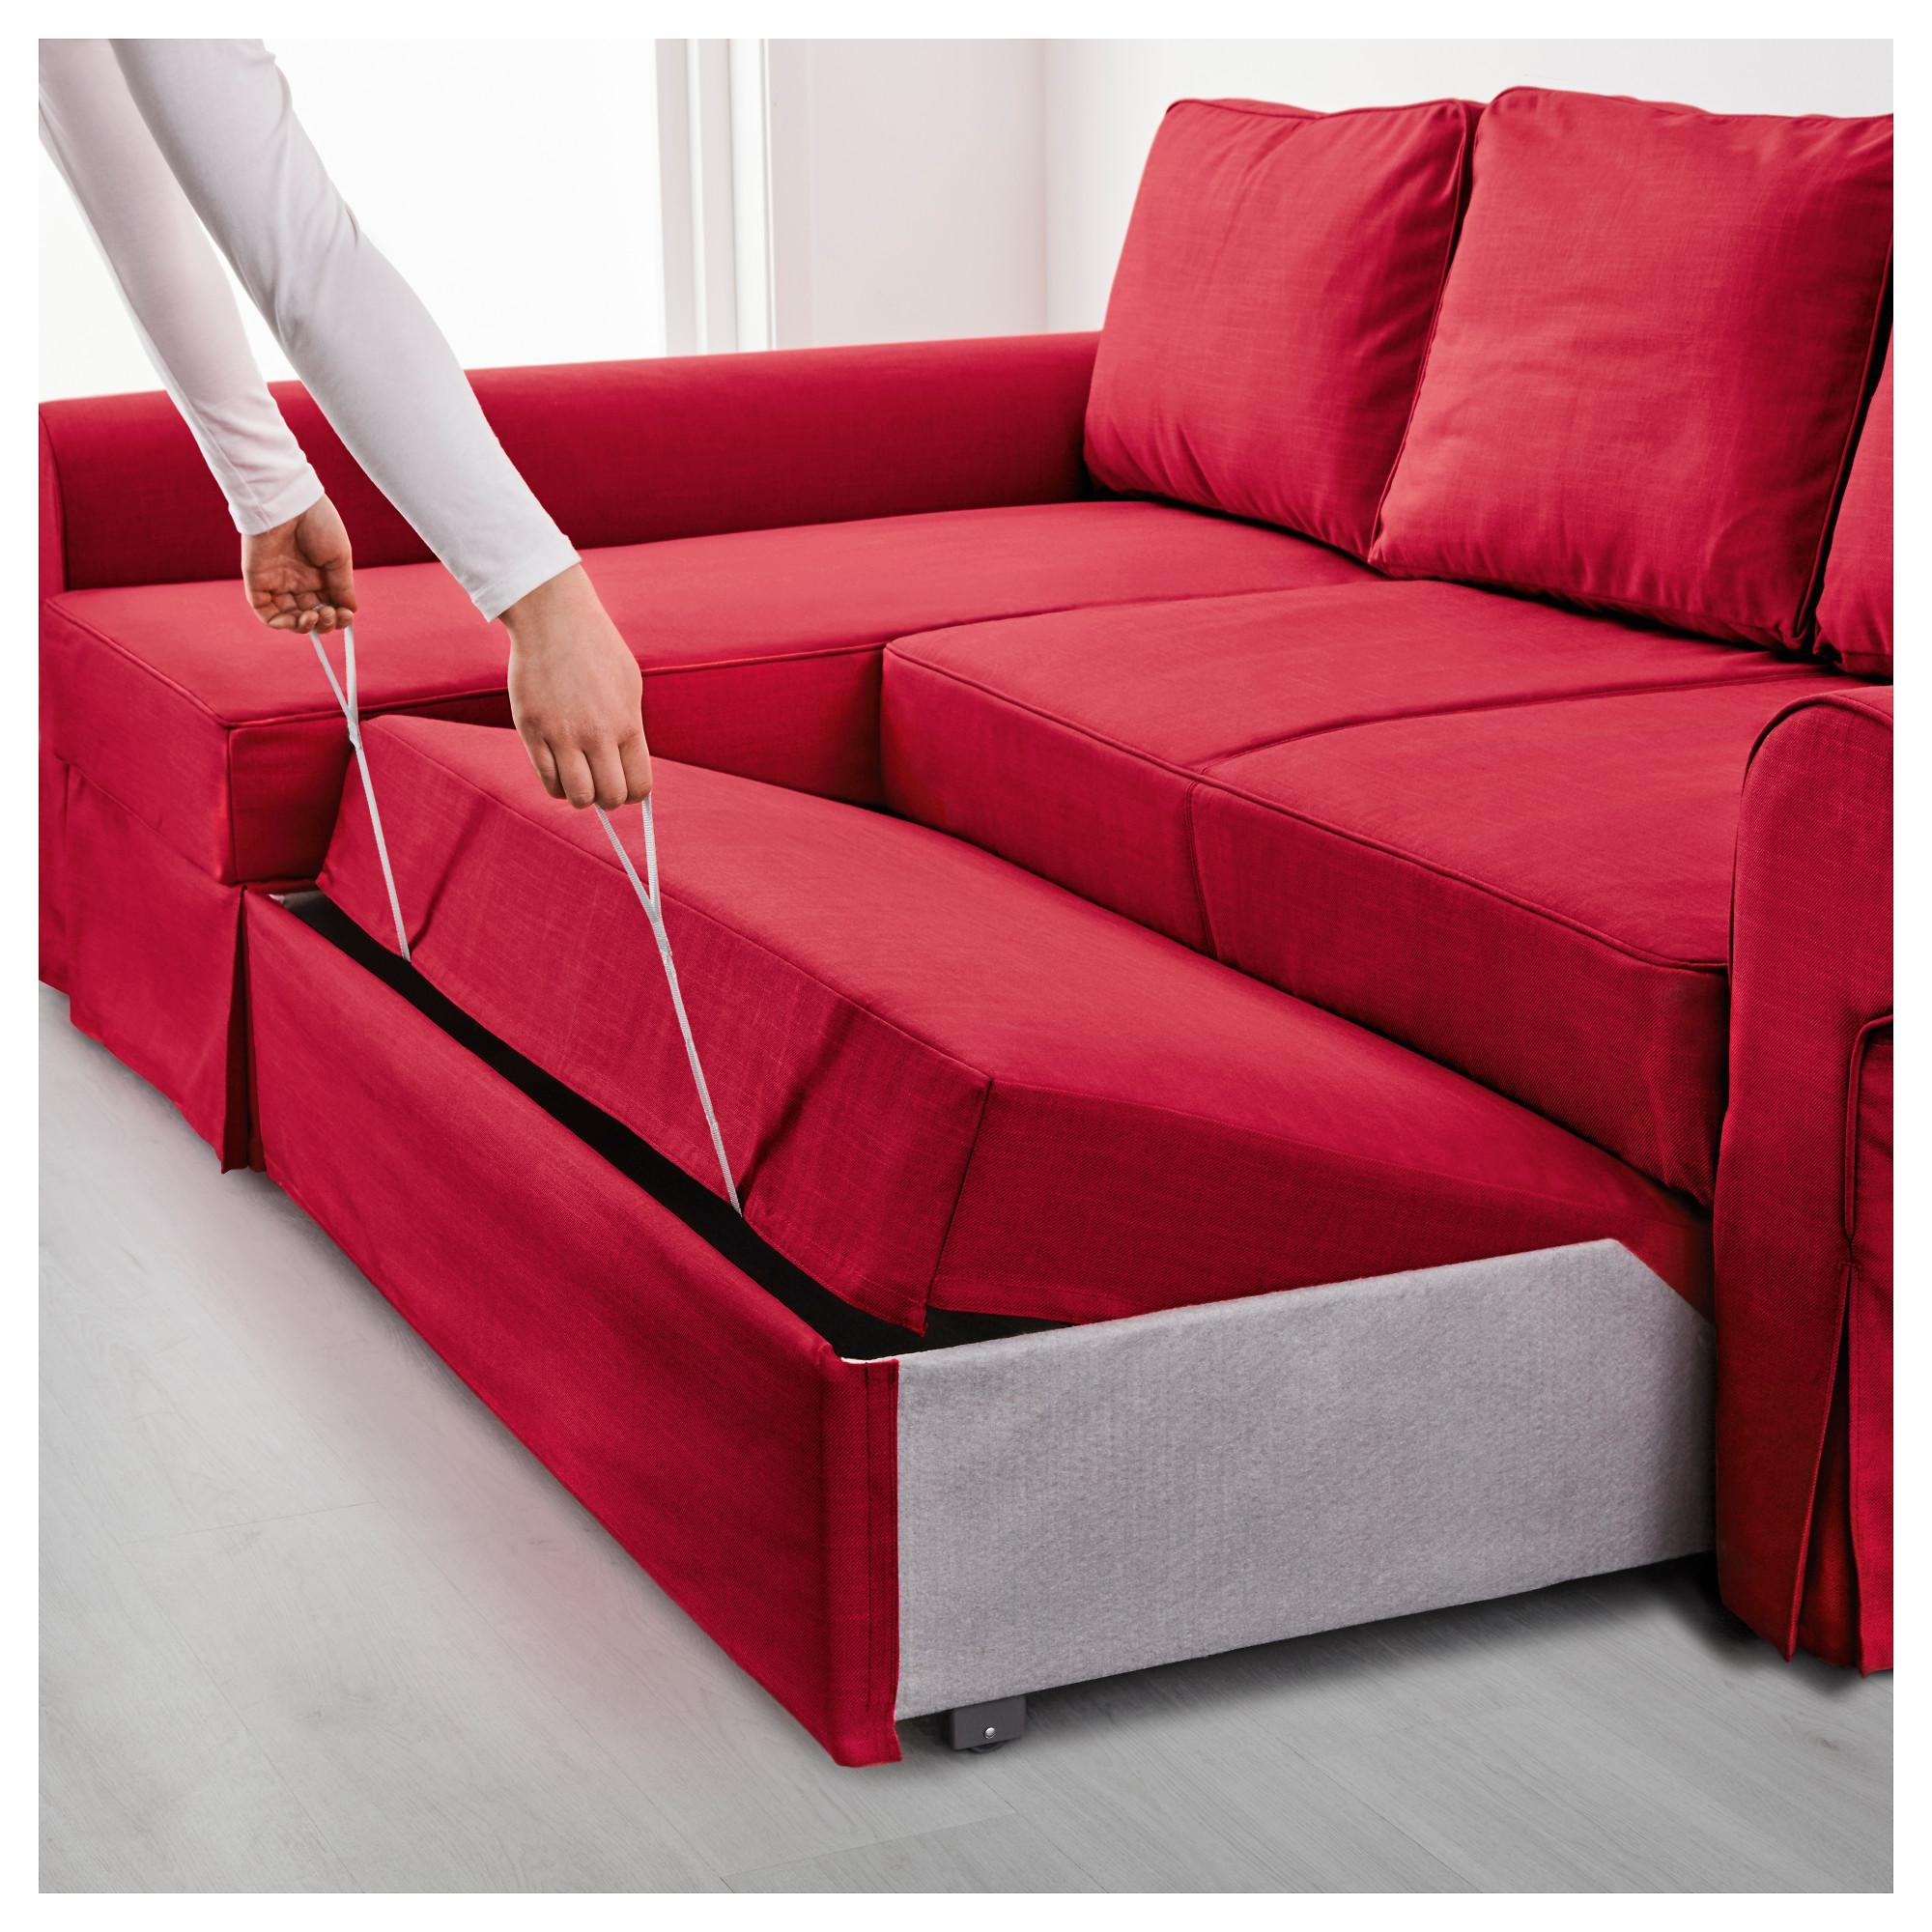 20 best ideas chaise longue sofa beds sofa ideas for Chaise sofa bed